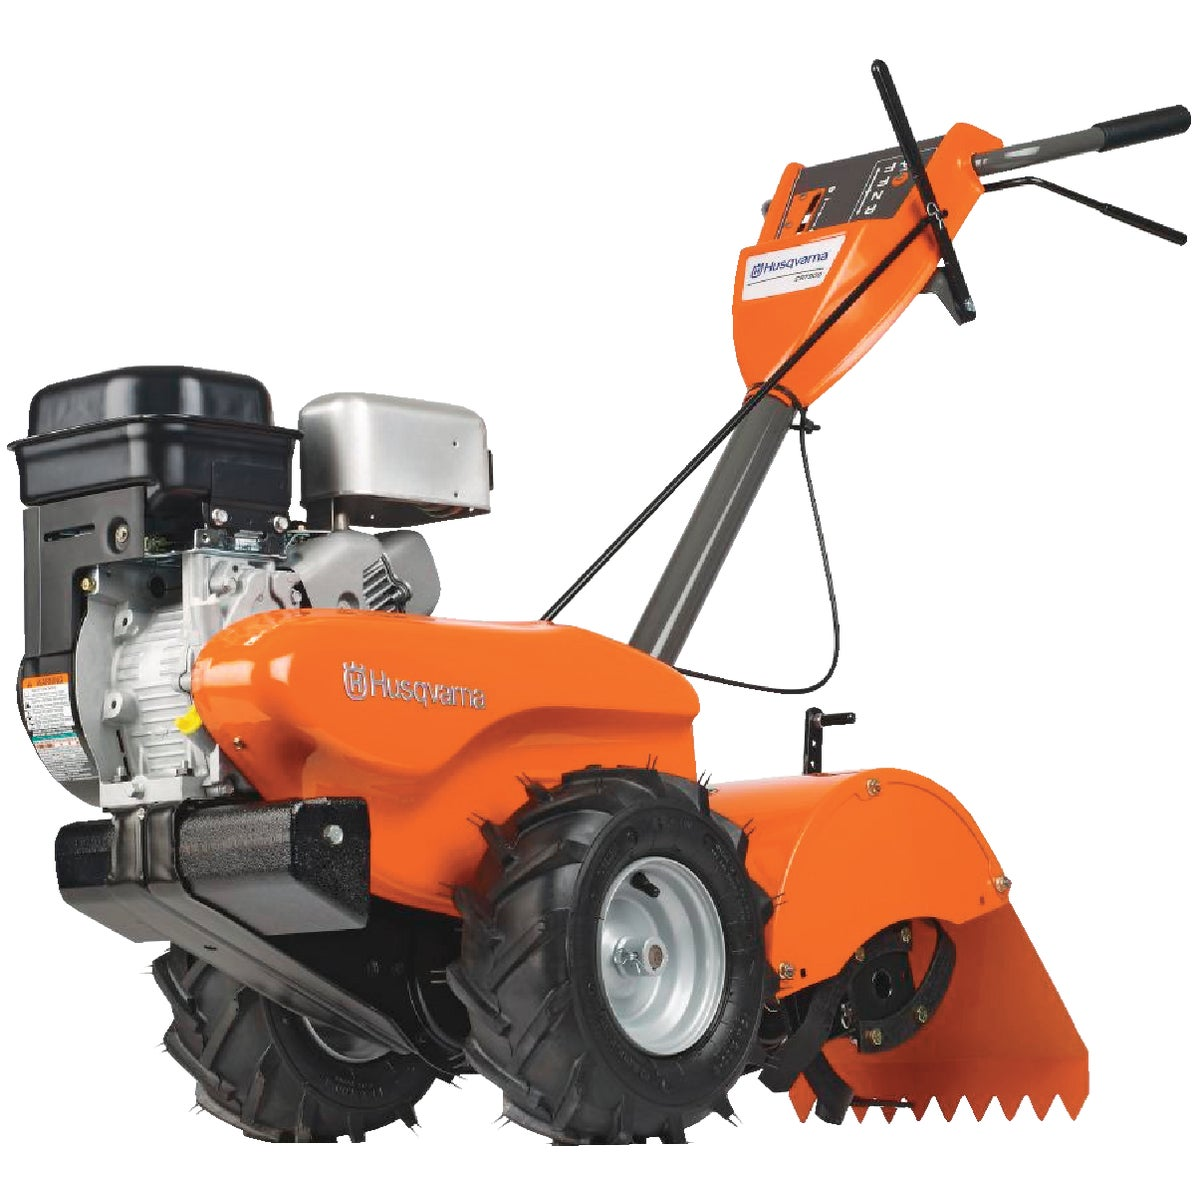 REAR TINE TILLER - 960930024 by Husqvarna Outdoor